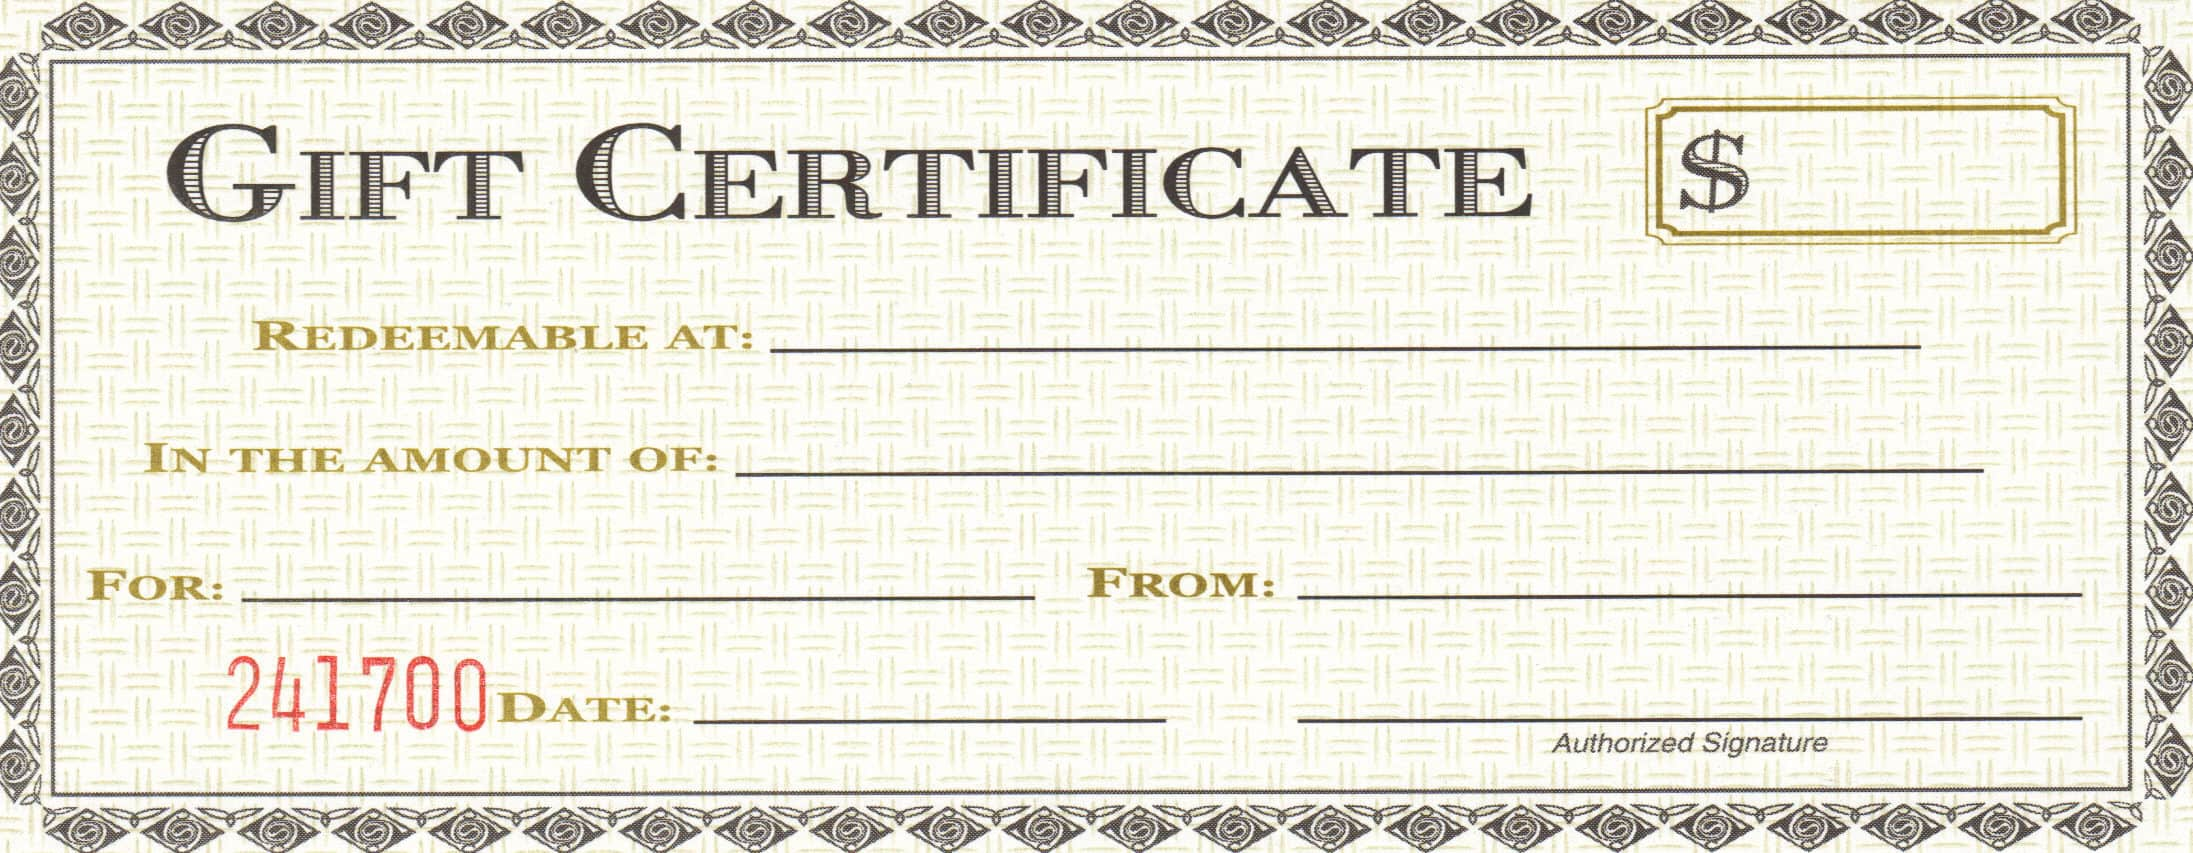 18 gift certificate templates excel pdf formats for Automotive gift certificate template free